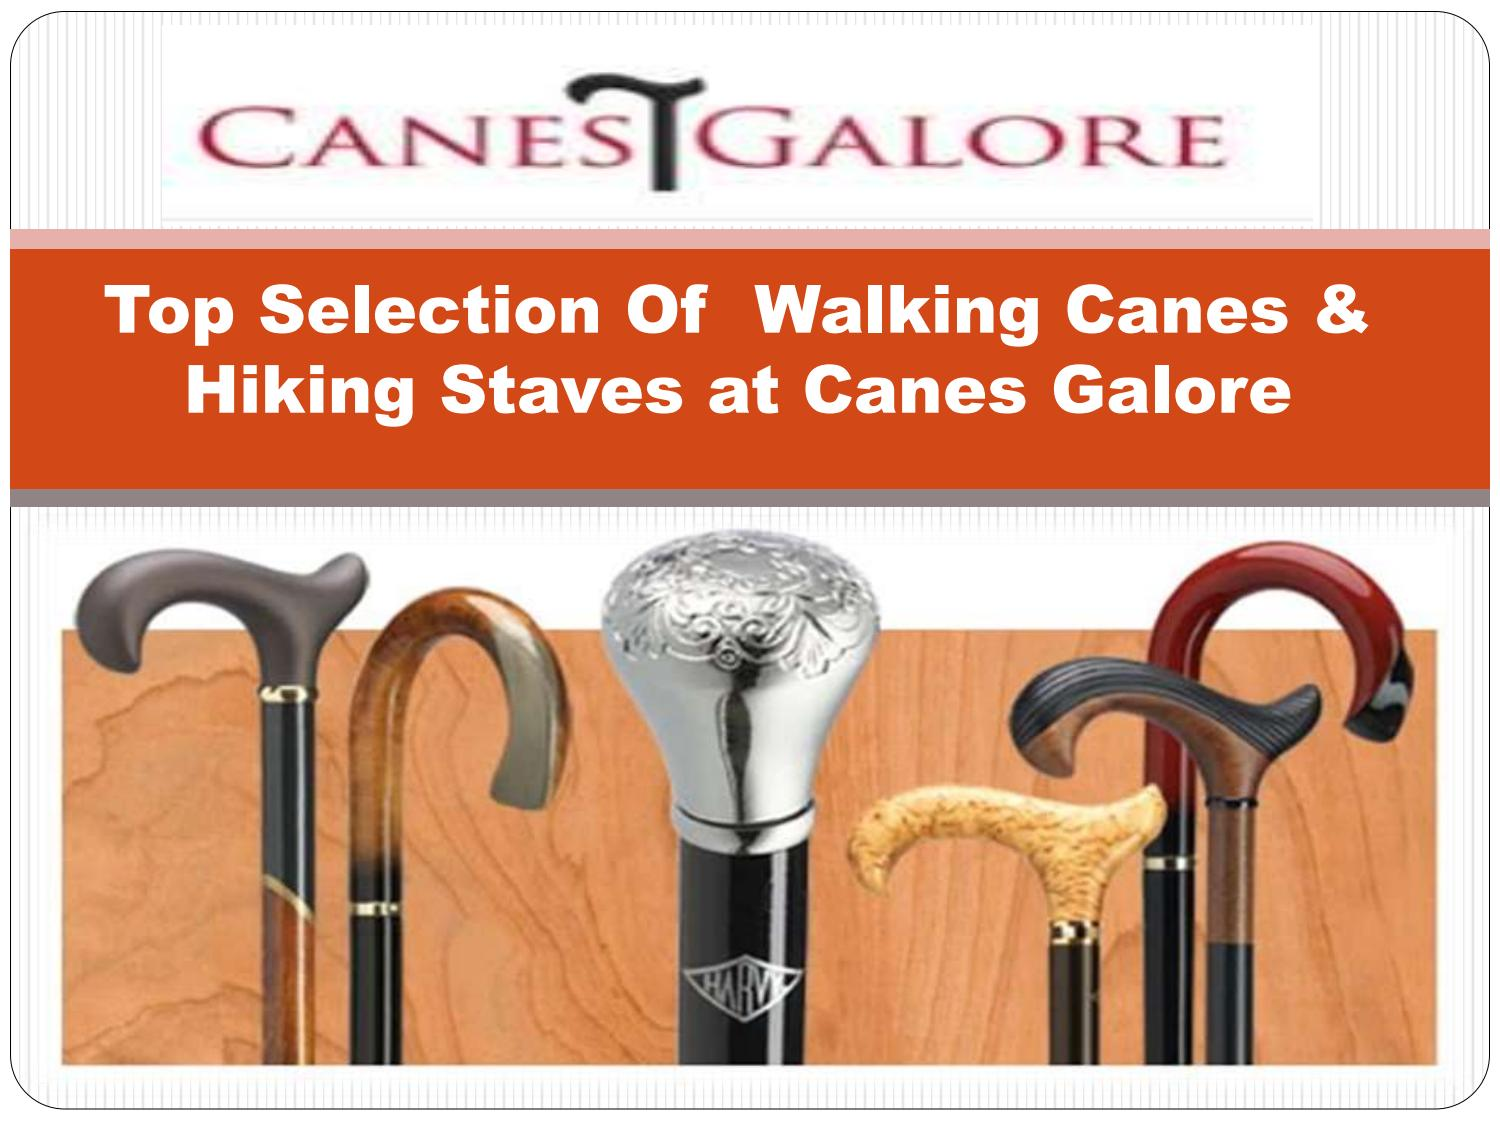 All You Need To Know While Choosing The Right Walking Sticks